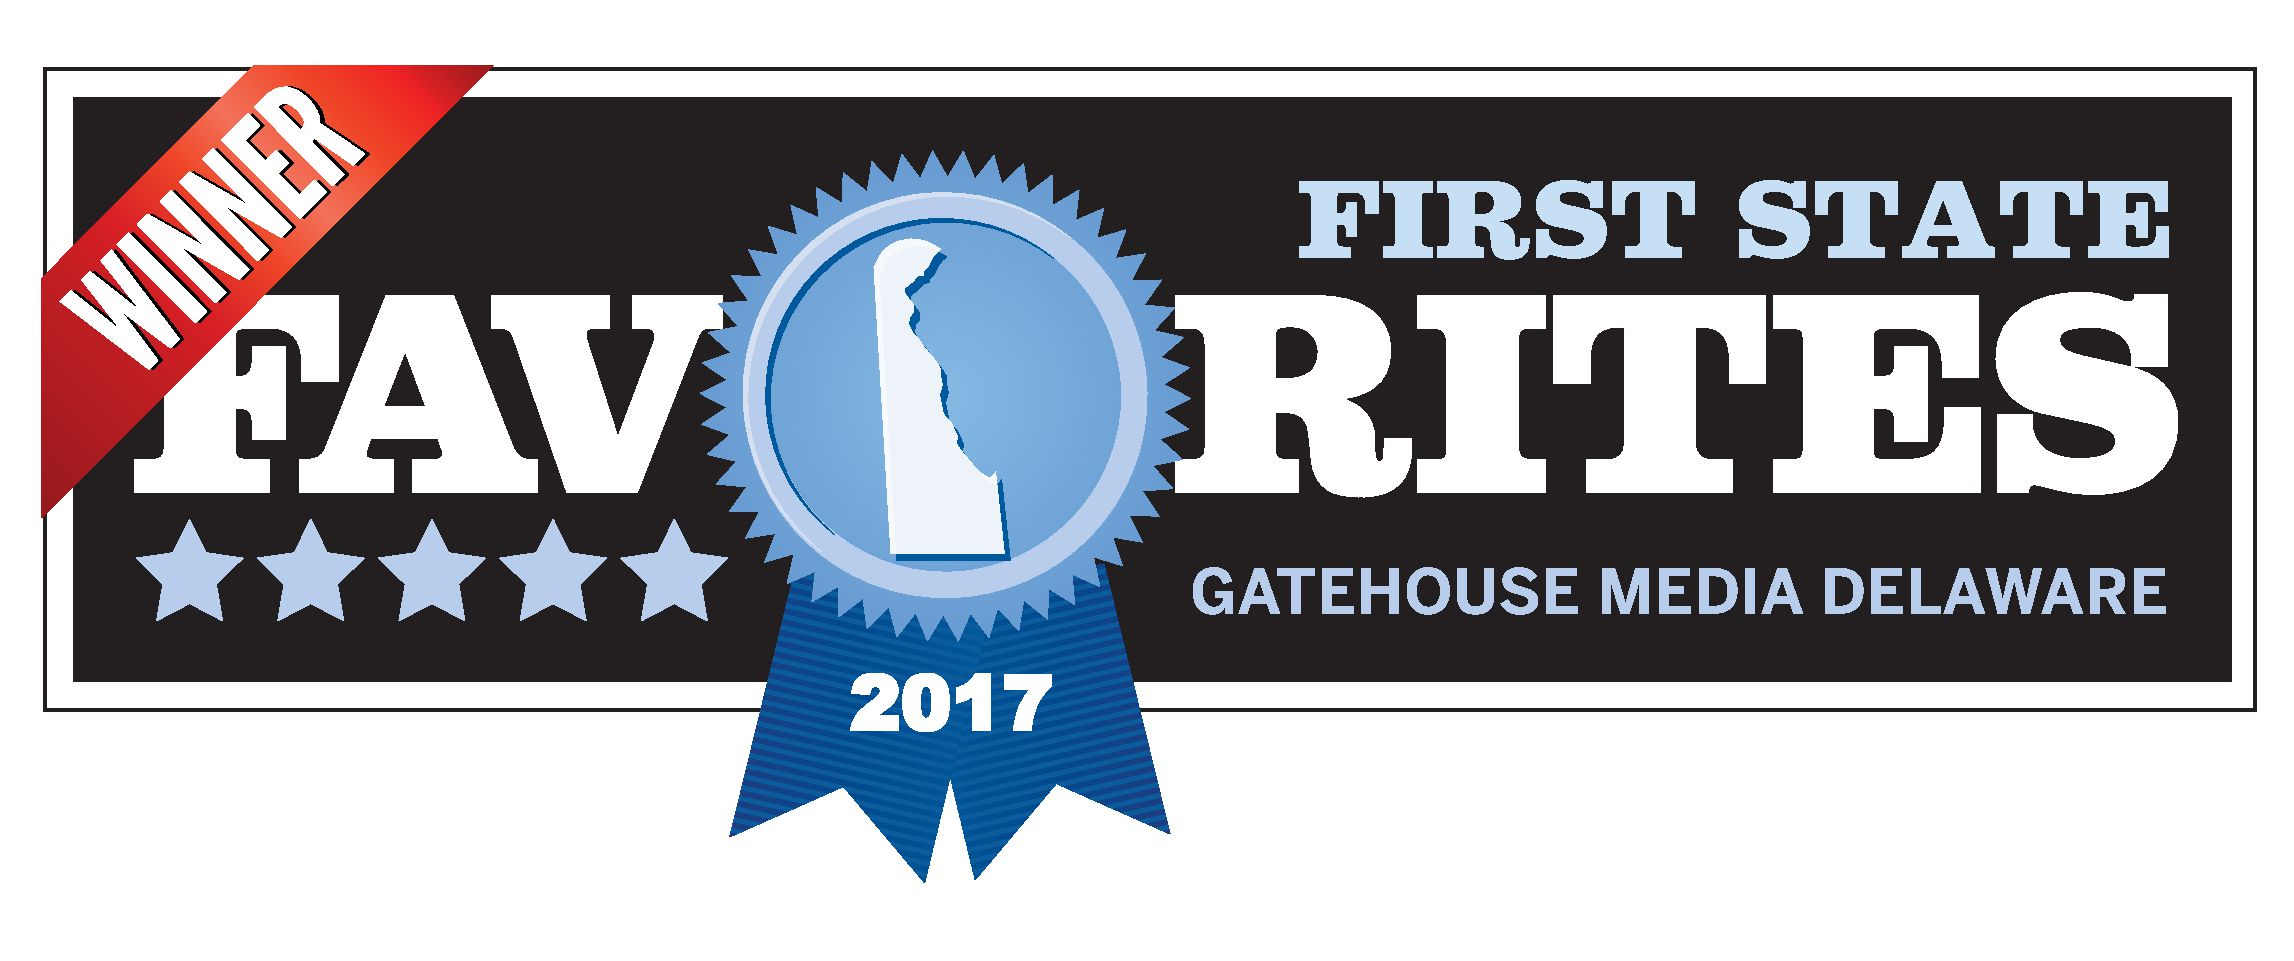 Winner. First state favorites. Gatehouse media delaware.